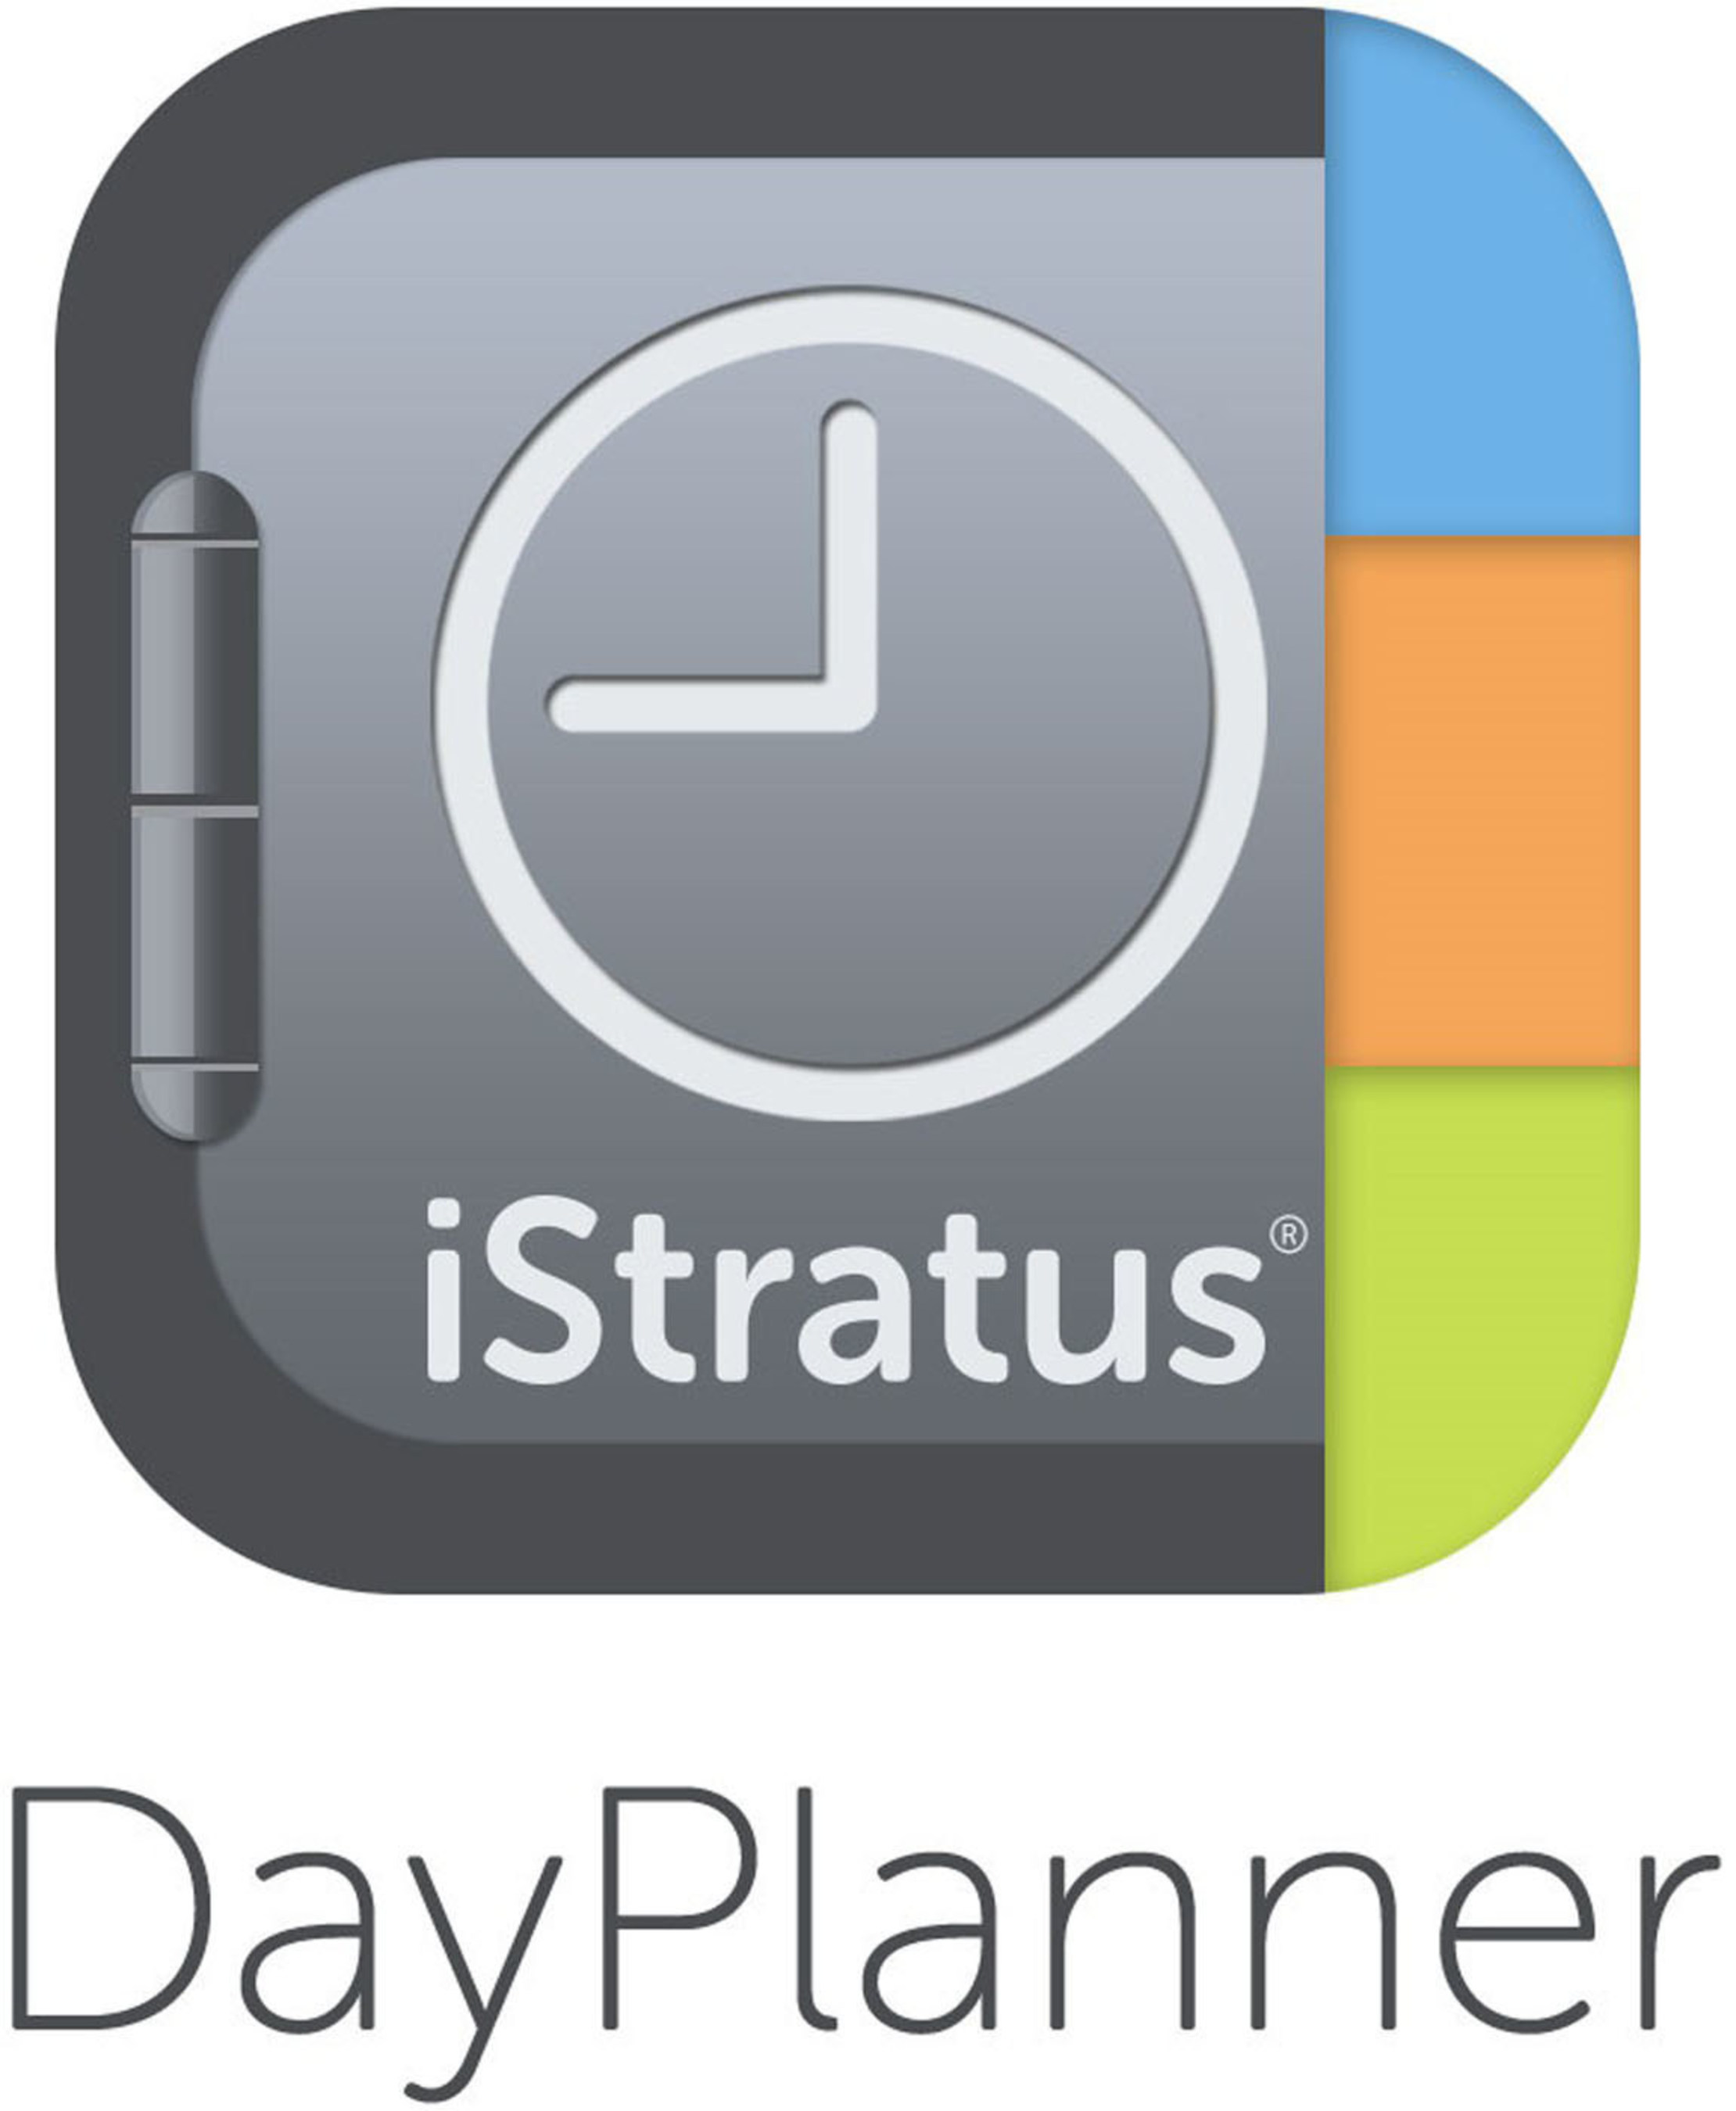 Your mobile day planner that gathers, connects and stores everything in your life. www.iStratus.com